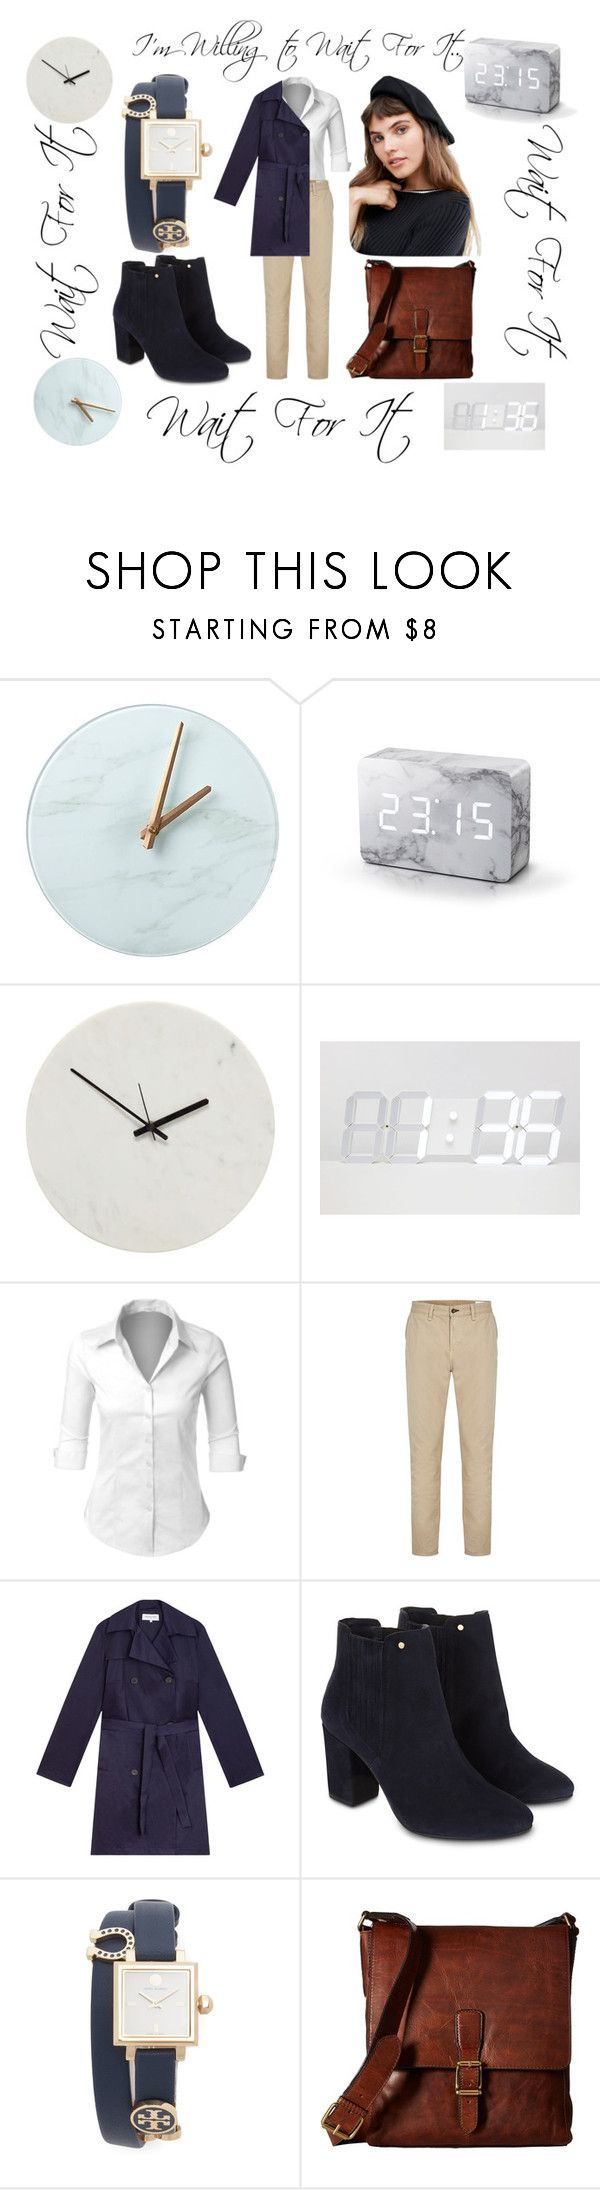 """Wait For It"" by gryffindor-designer on Polyvore featuring Gingko Electronics, Holly's House, LE3NO, rag & bone, Gérard Darel, Monsoon, Tory Burch, Frye and ALDO"